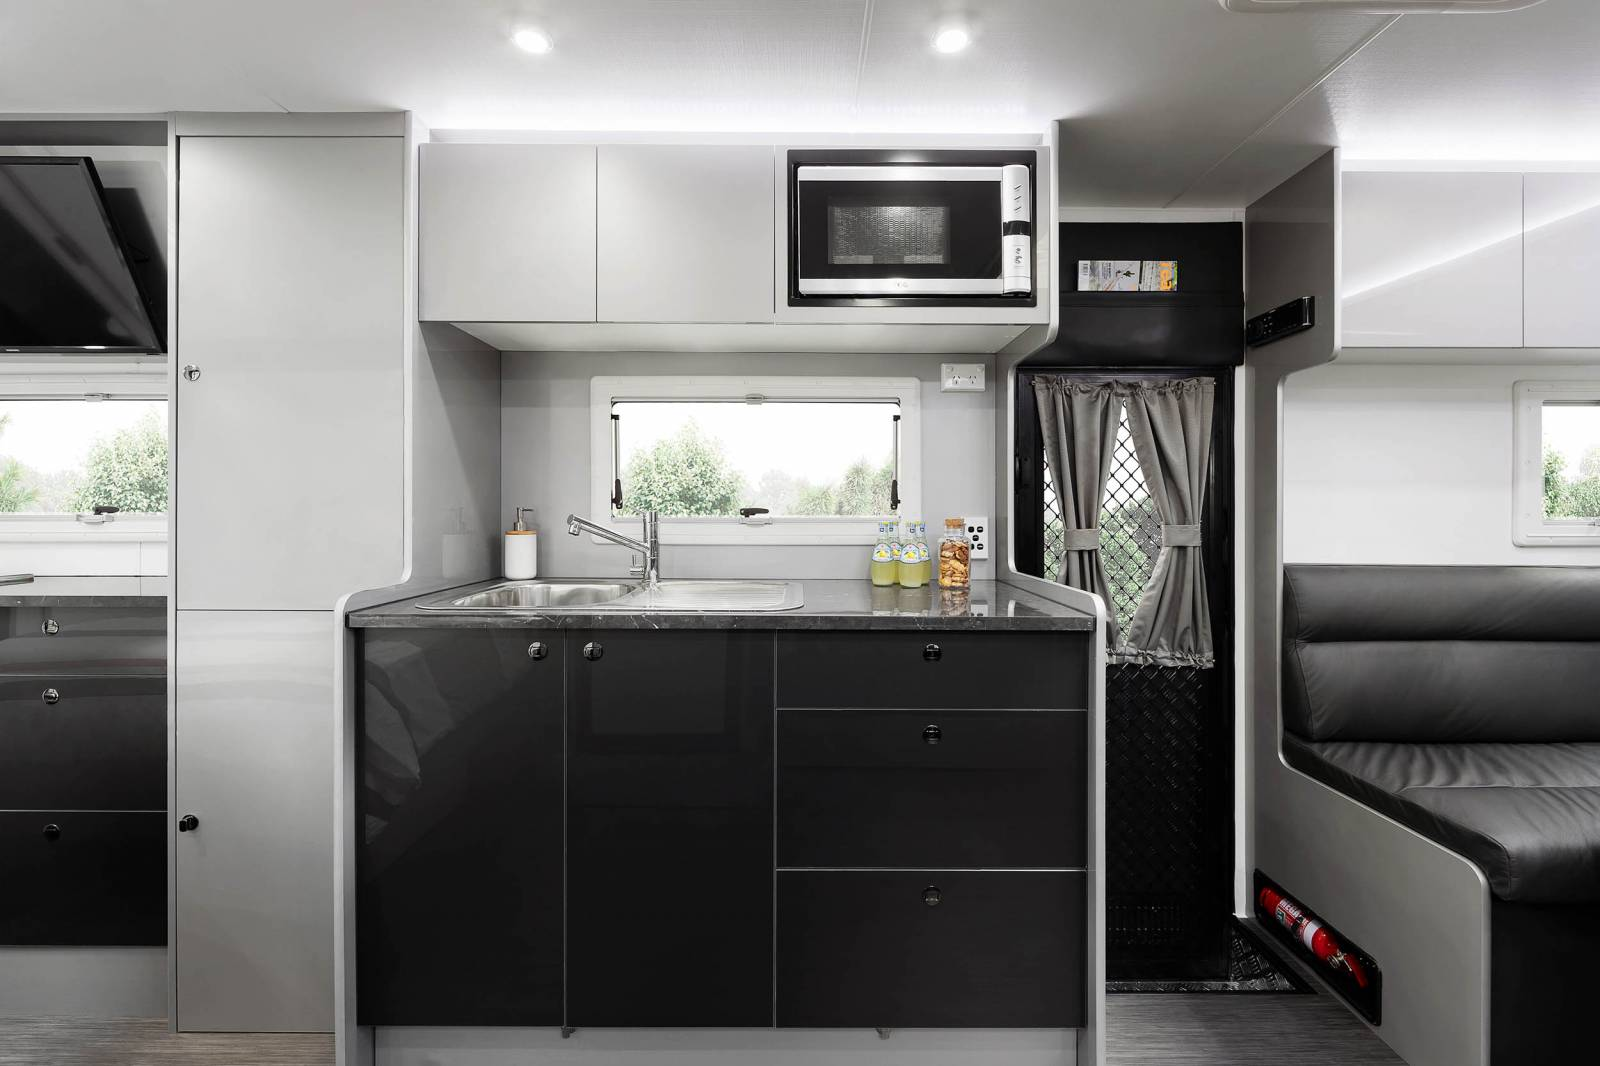 The best appliances and finishes in the industry